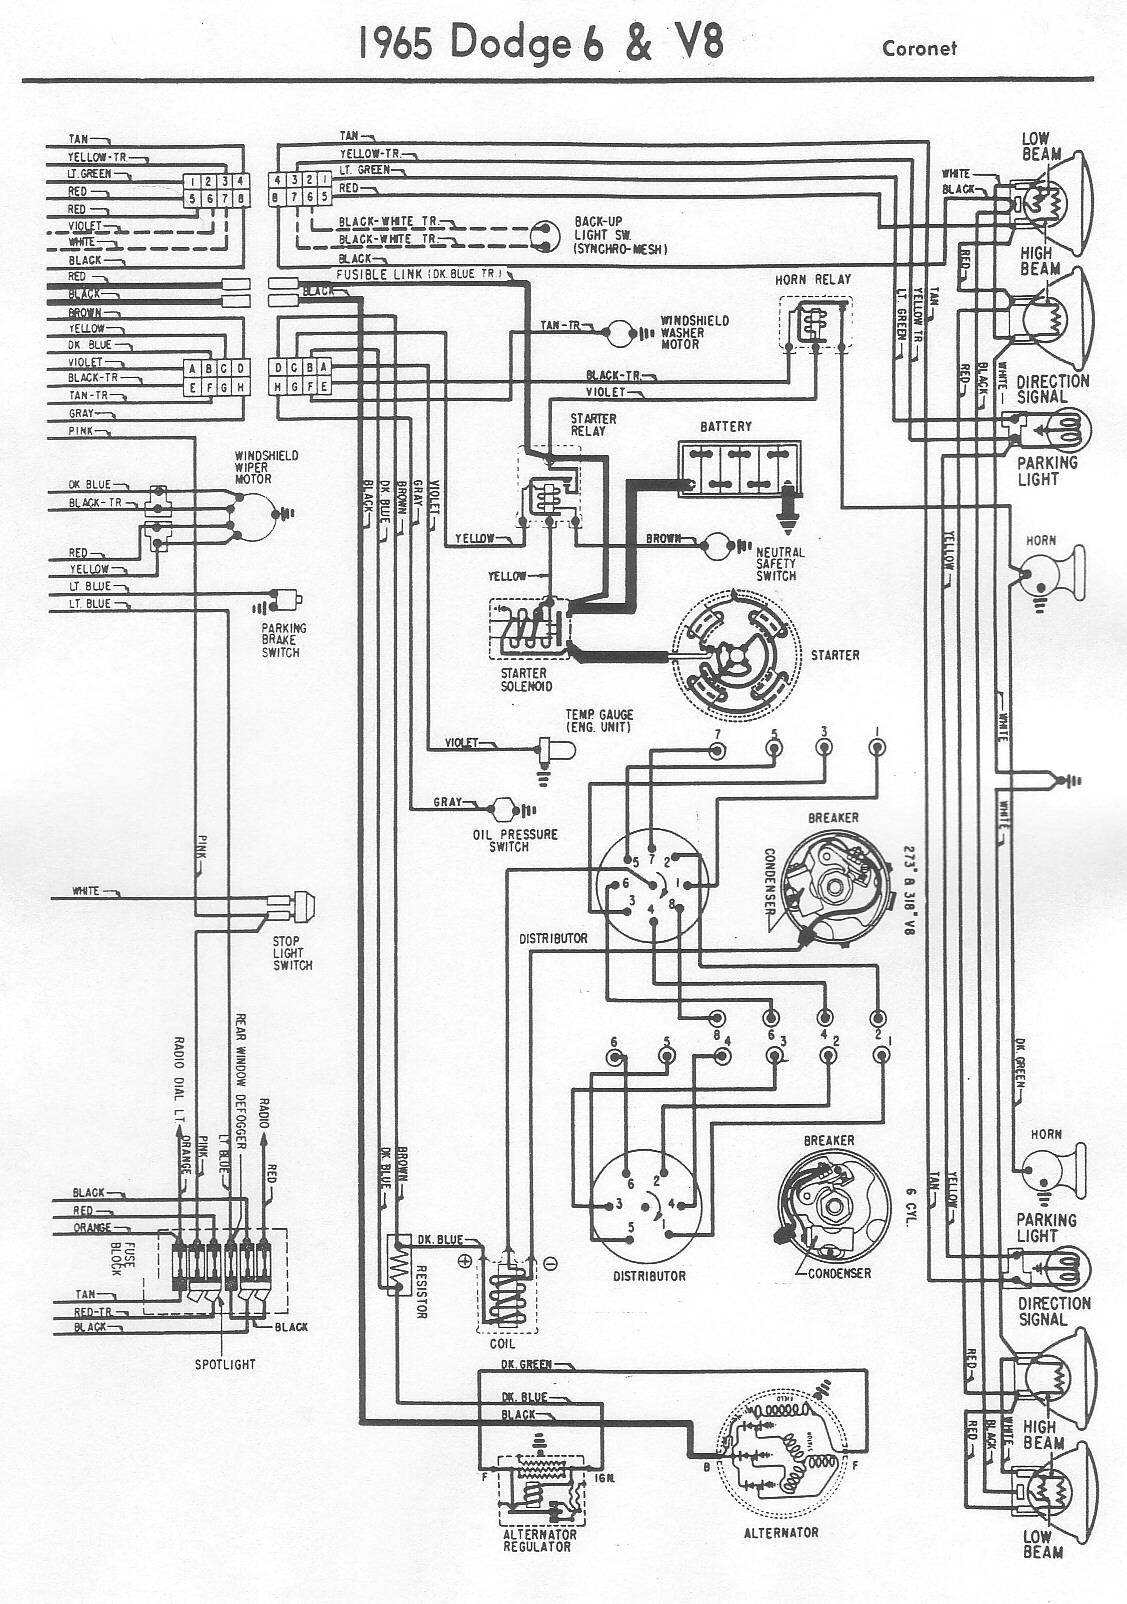 Mustang Fuse Panel Diagram Wiring Diagram Images